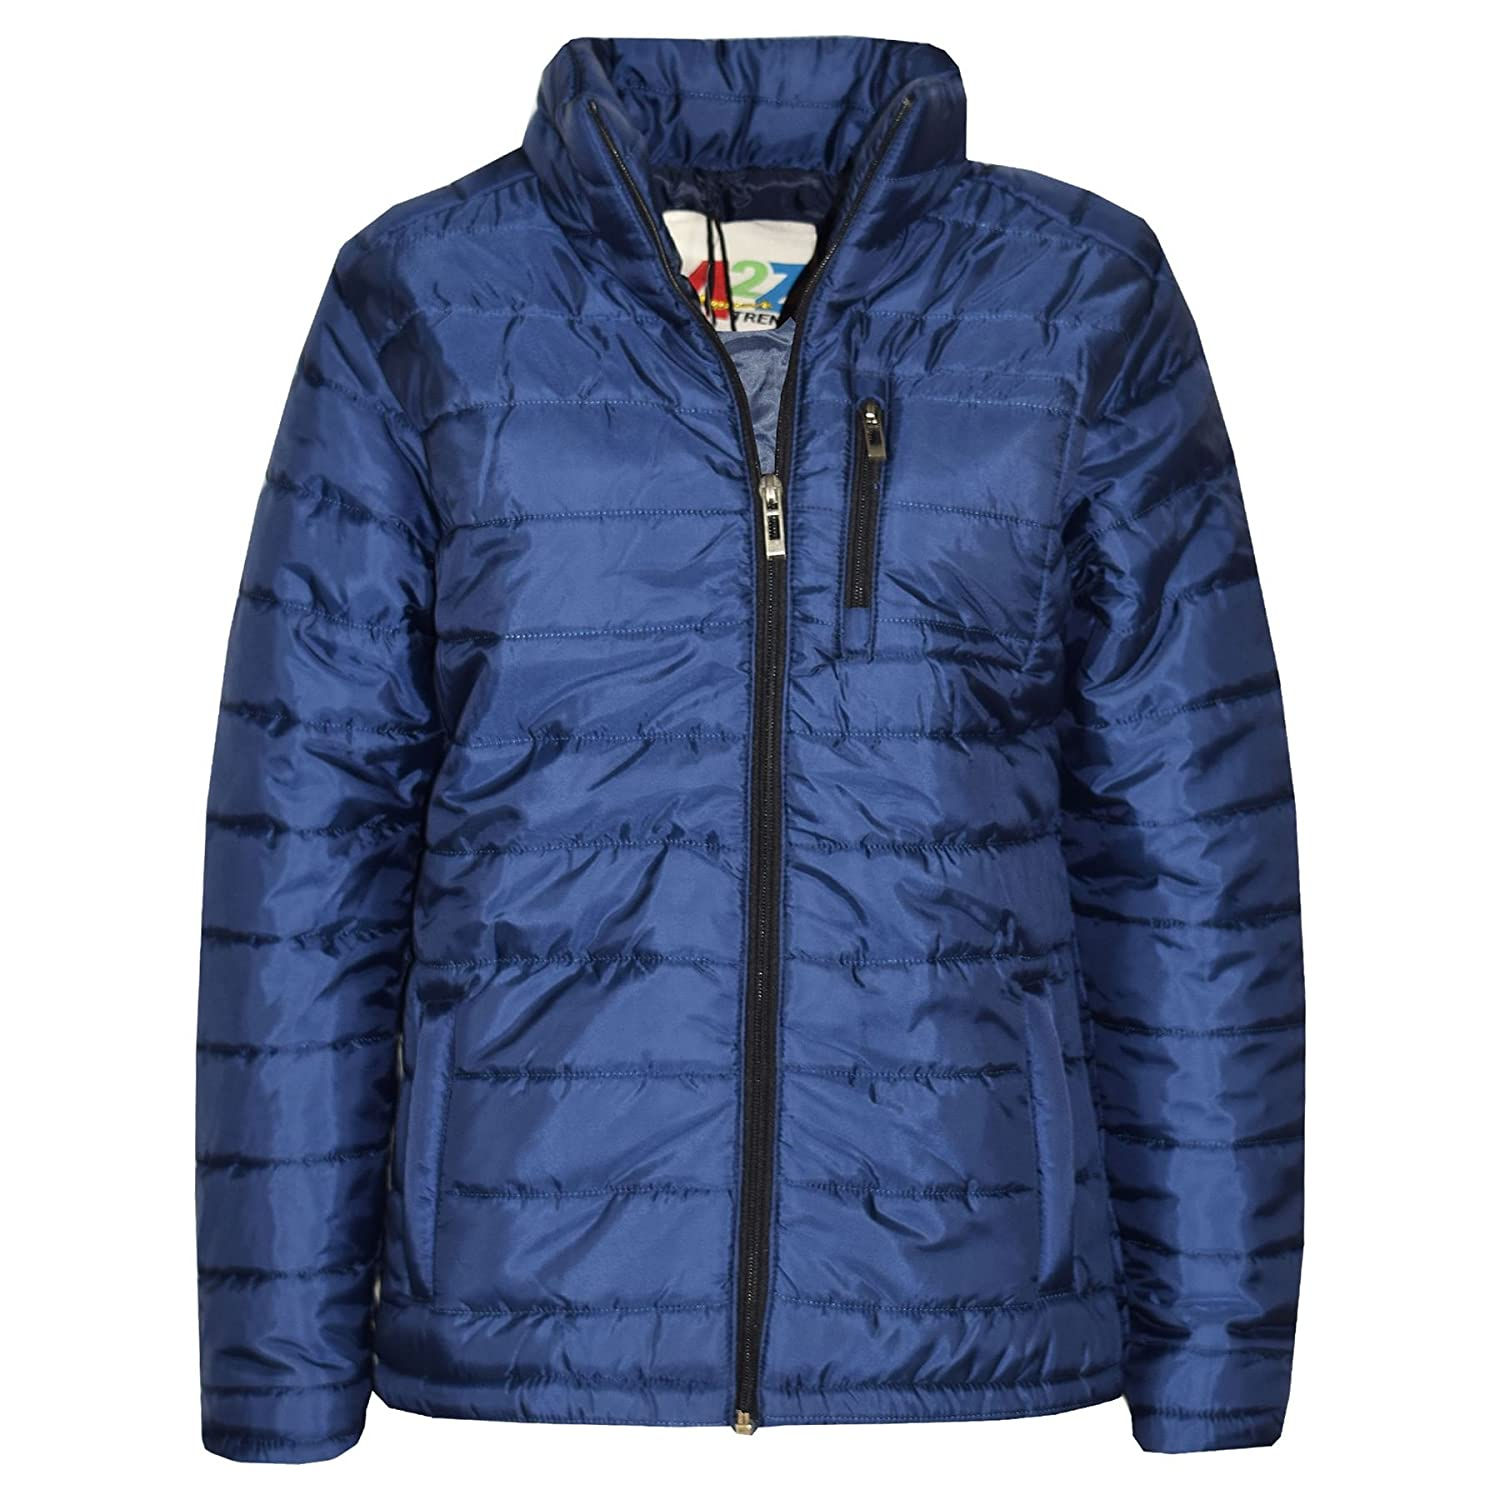 08a22851e885 A2Z 4 Kids® Boys Jacket Kids Designer s Foam Padded Navy Puffa School Coat  Quilted Warm Thick Jackets Coats. A2Z 4 Kids® Is Our Trade Mark